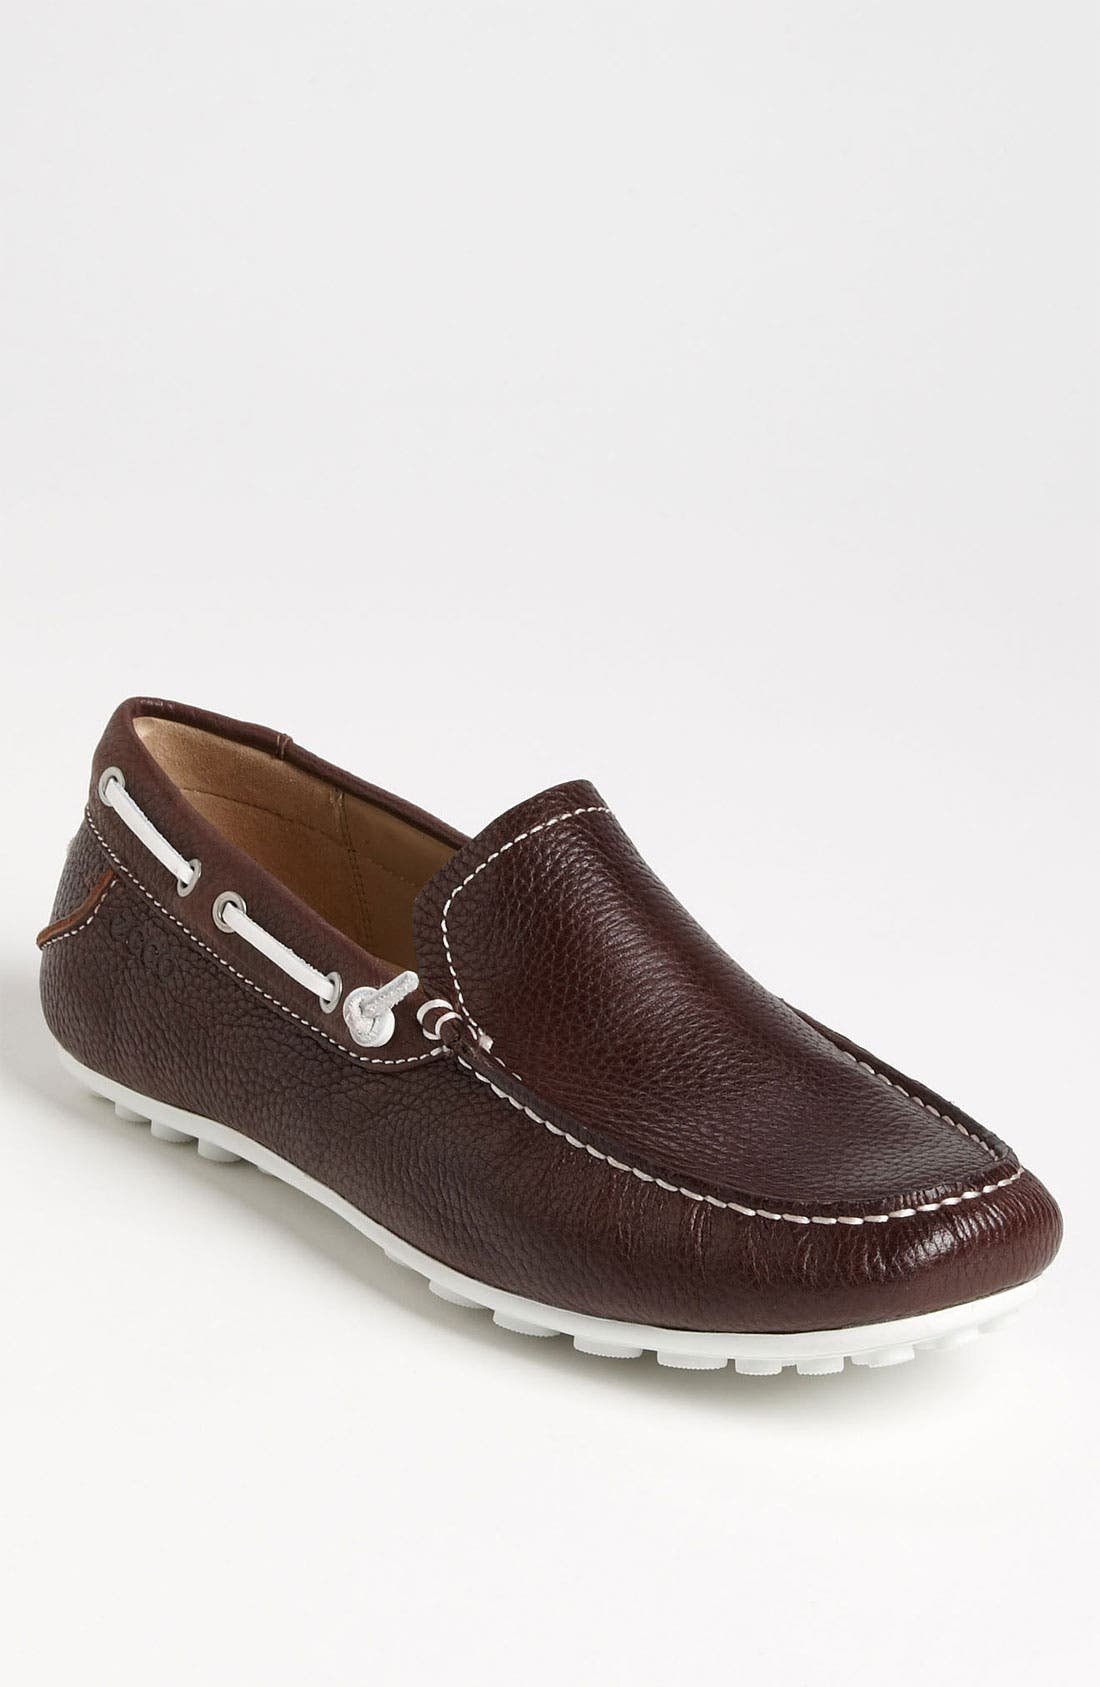 'Cuno' Driving Shoe,                         Main,                         color, Coffee